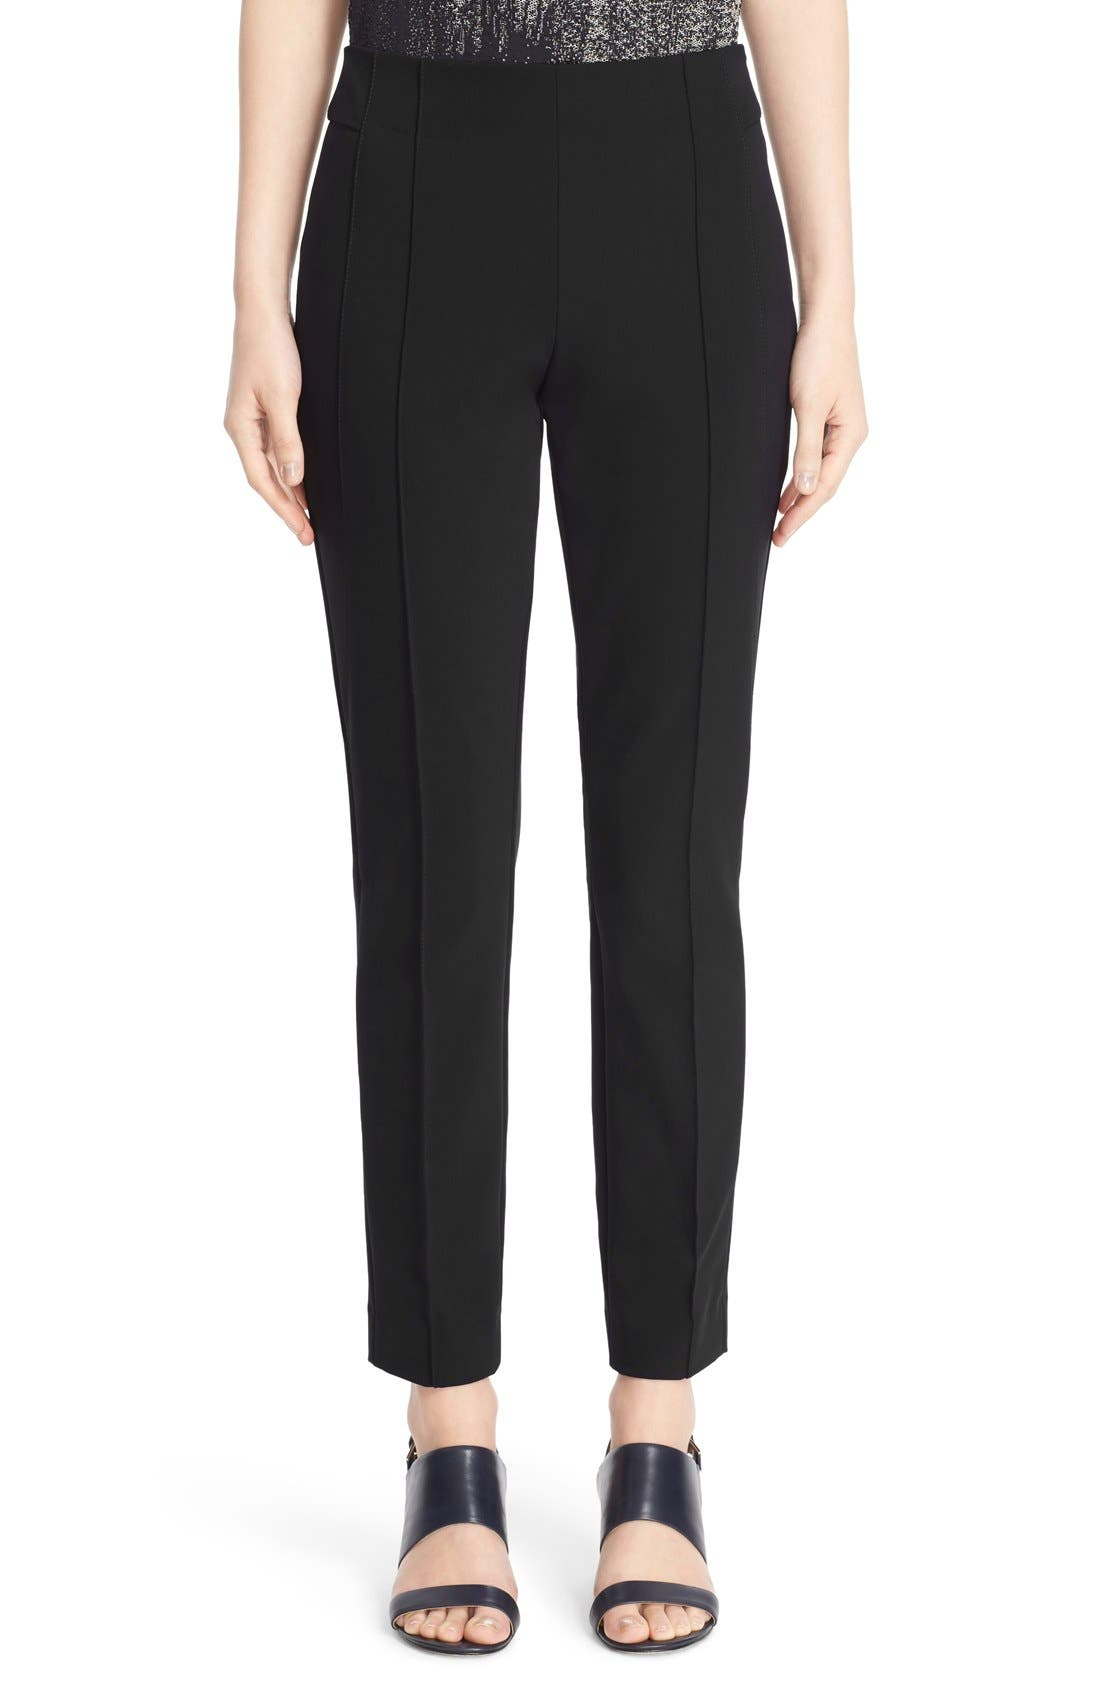 LAFAYETTE 148 NEW YORK, 'Gramercy' Acclaimed Stretch Pants, Main thumbnail 1, color, BLACK